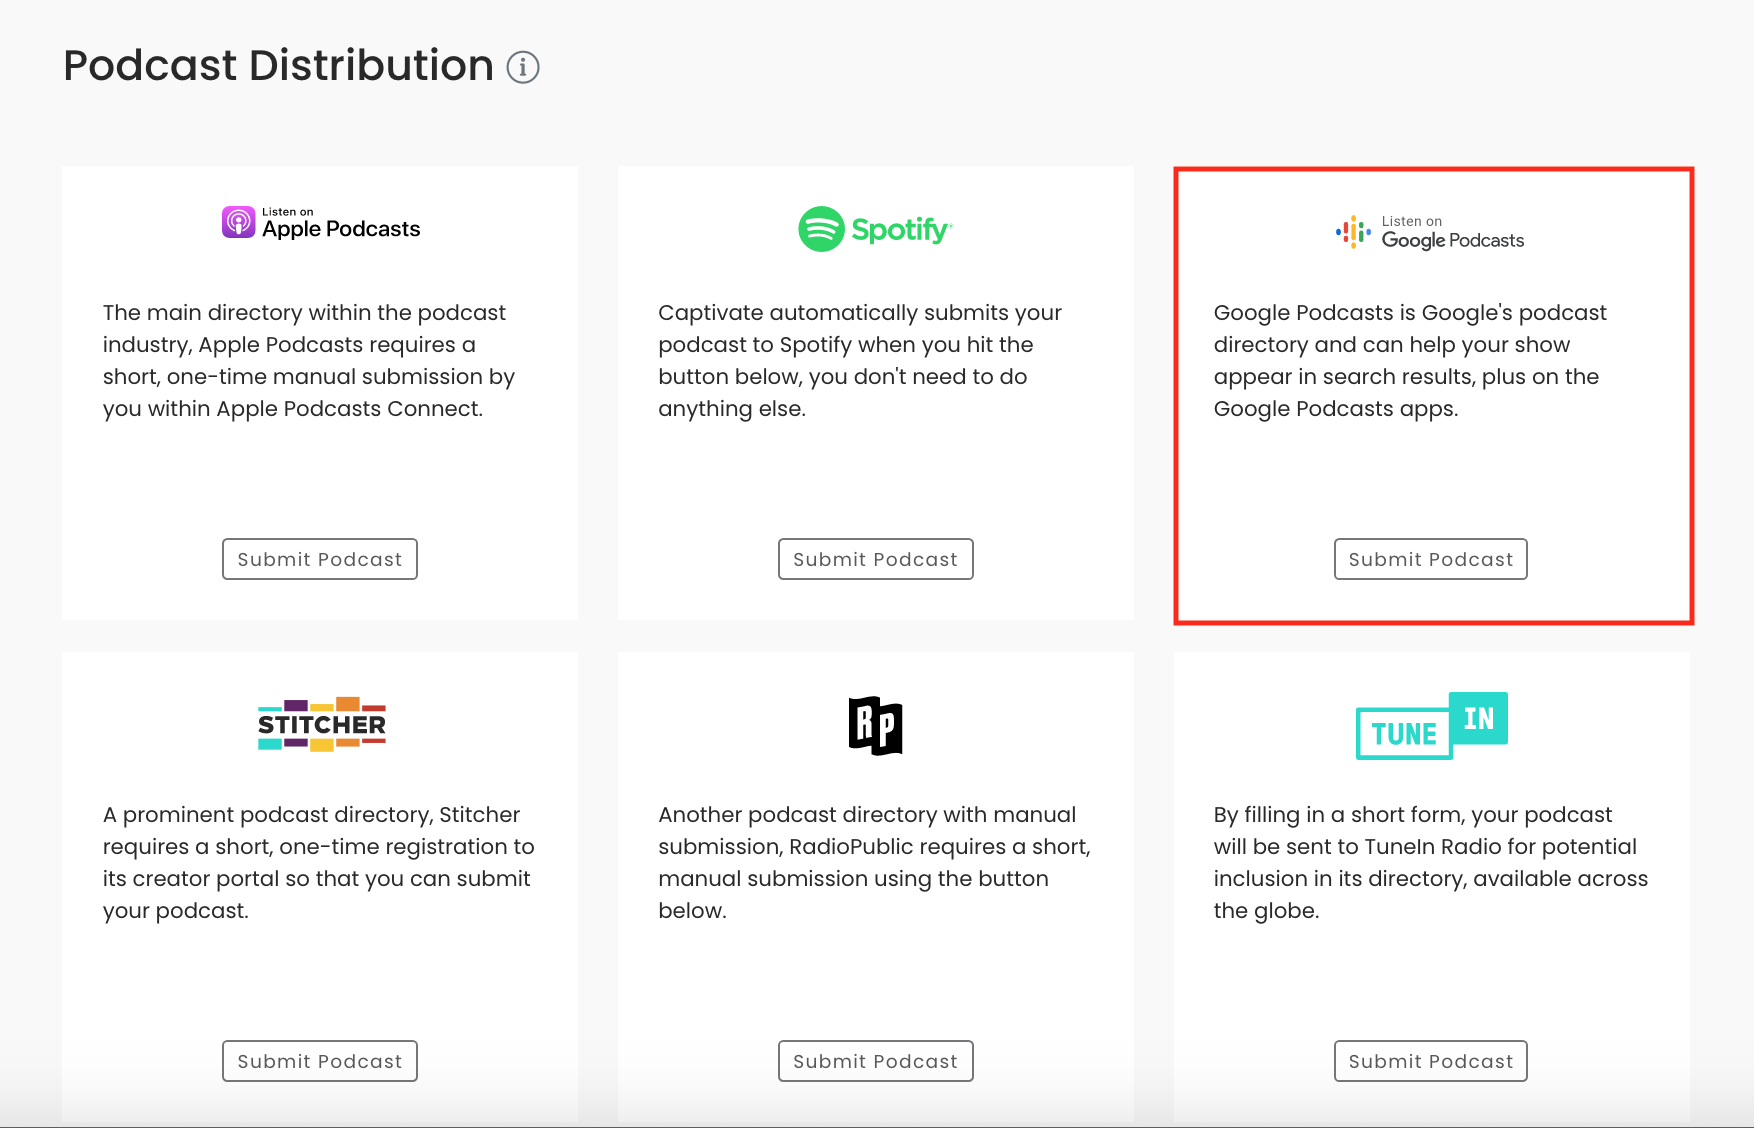 Captivate's distribution screen showing various ways to submit a podcast to 6 directories: Apple, Spotify, Google Podcasts (highlighted with a red border), Stitcher, RP and TuneIn.